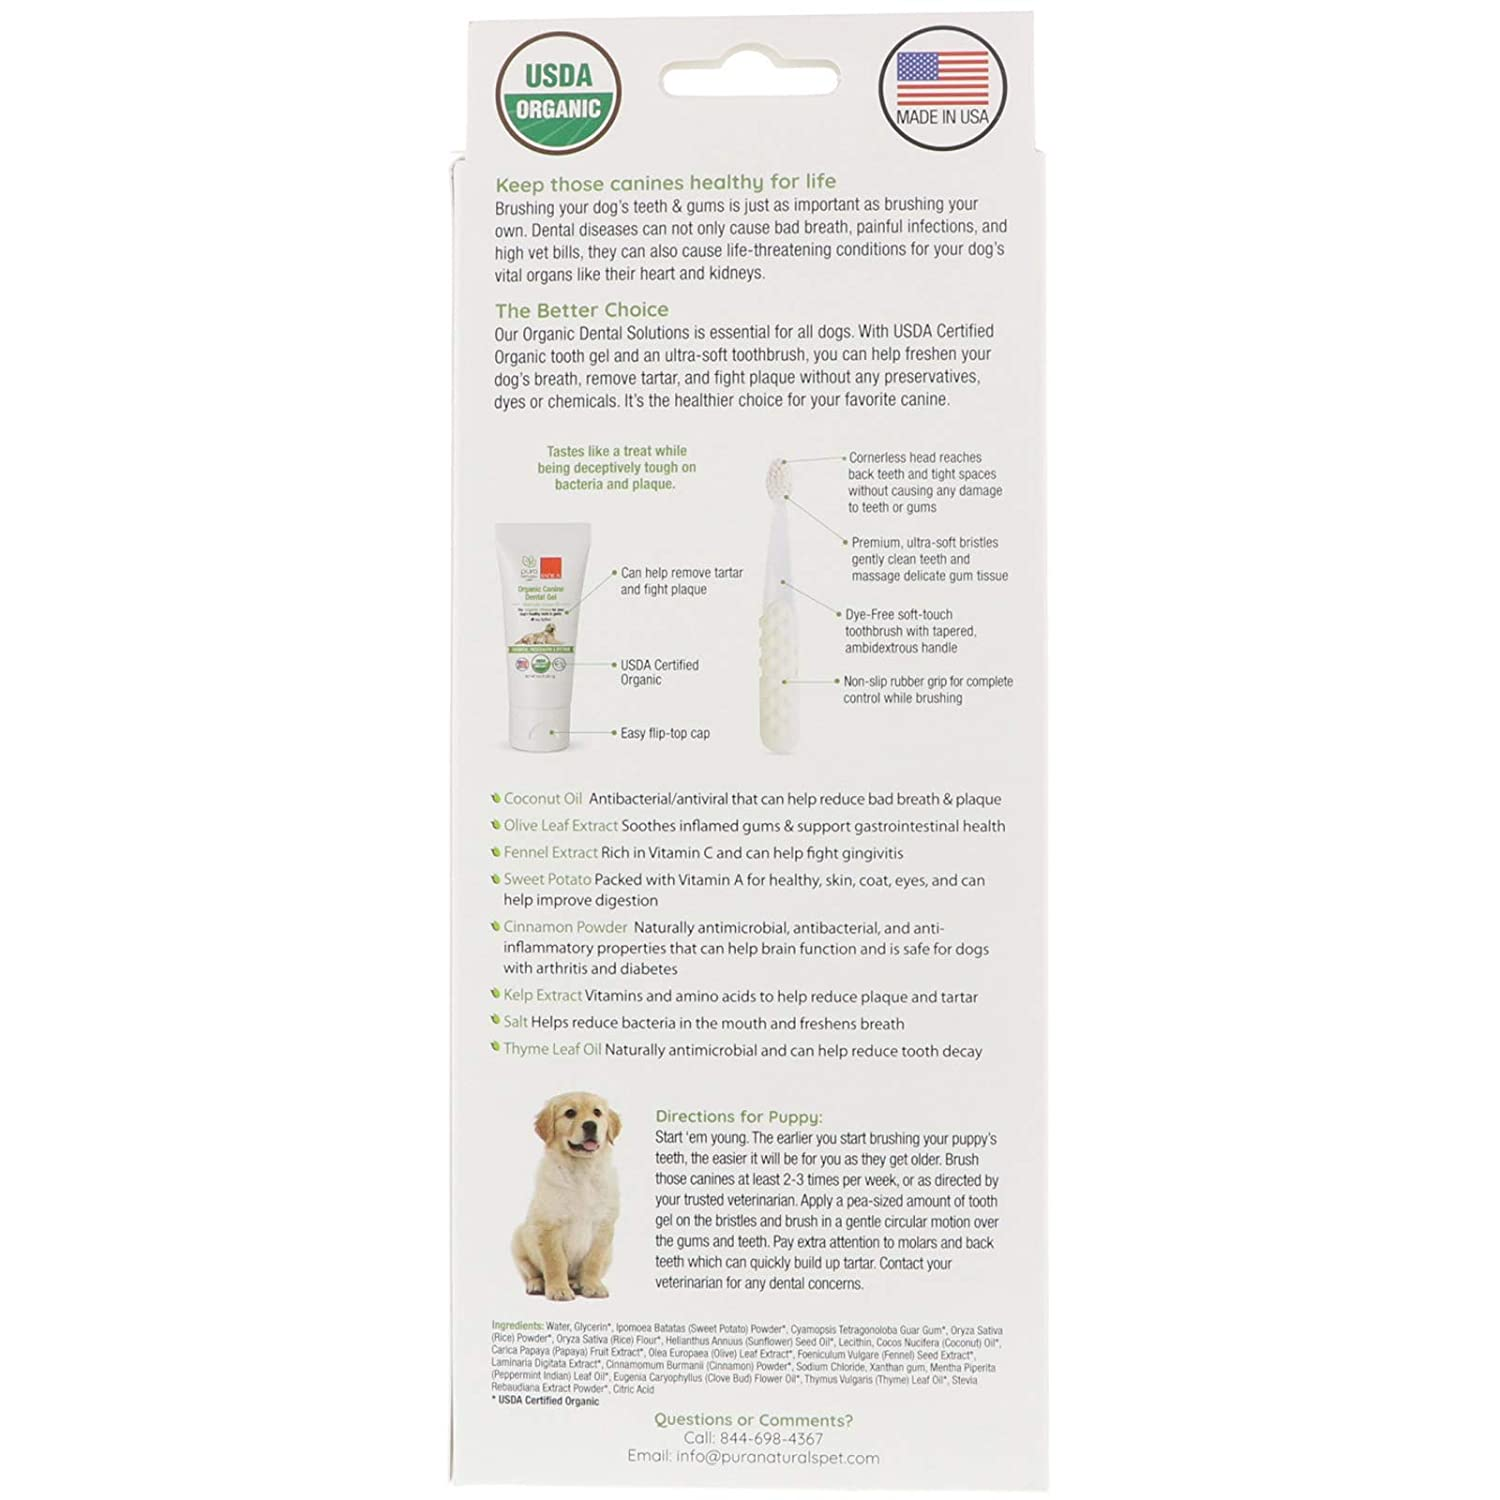 Radius Toothbrushes Organic Dental Solutions Puppy Kit, 1 Count: Amazon.es: Salud y cuidado personal